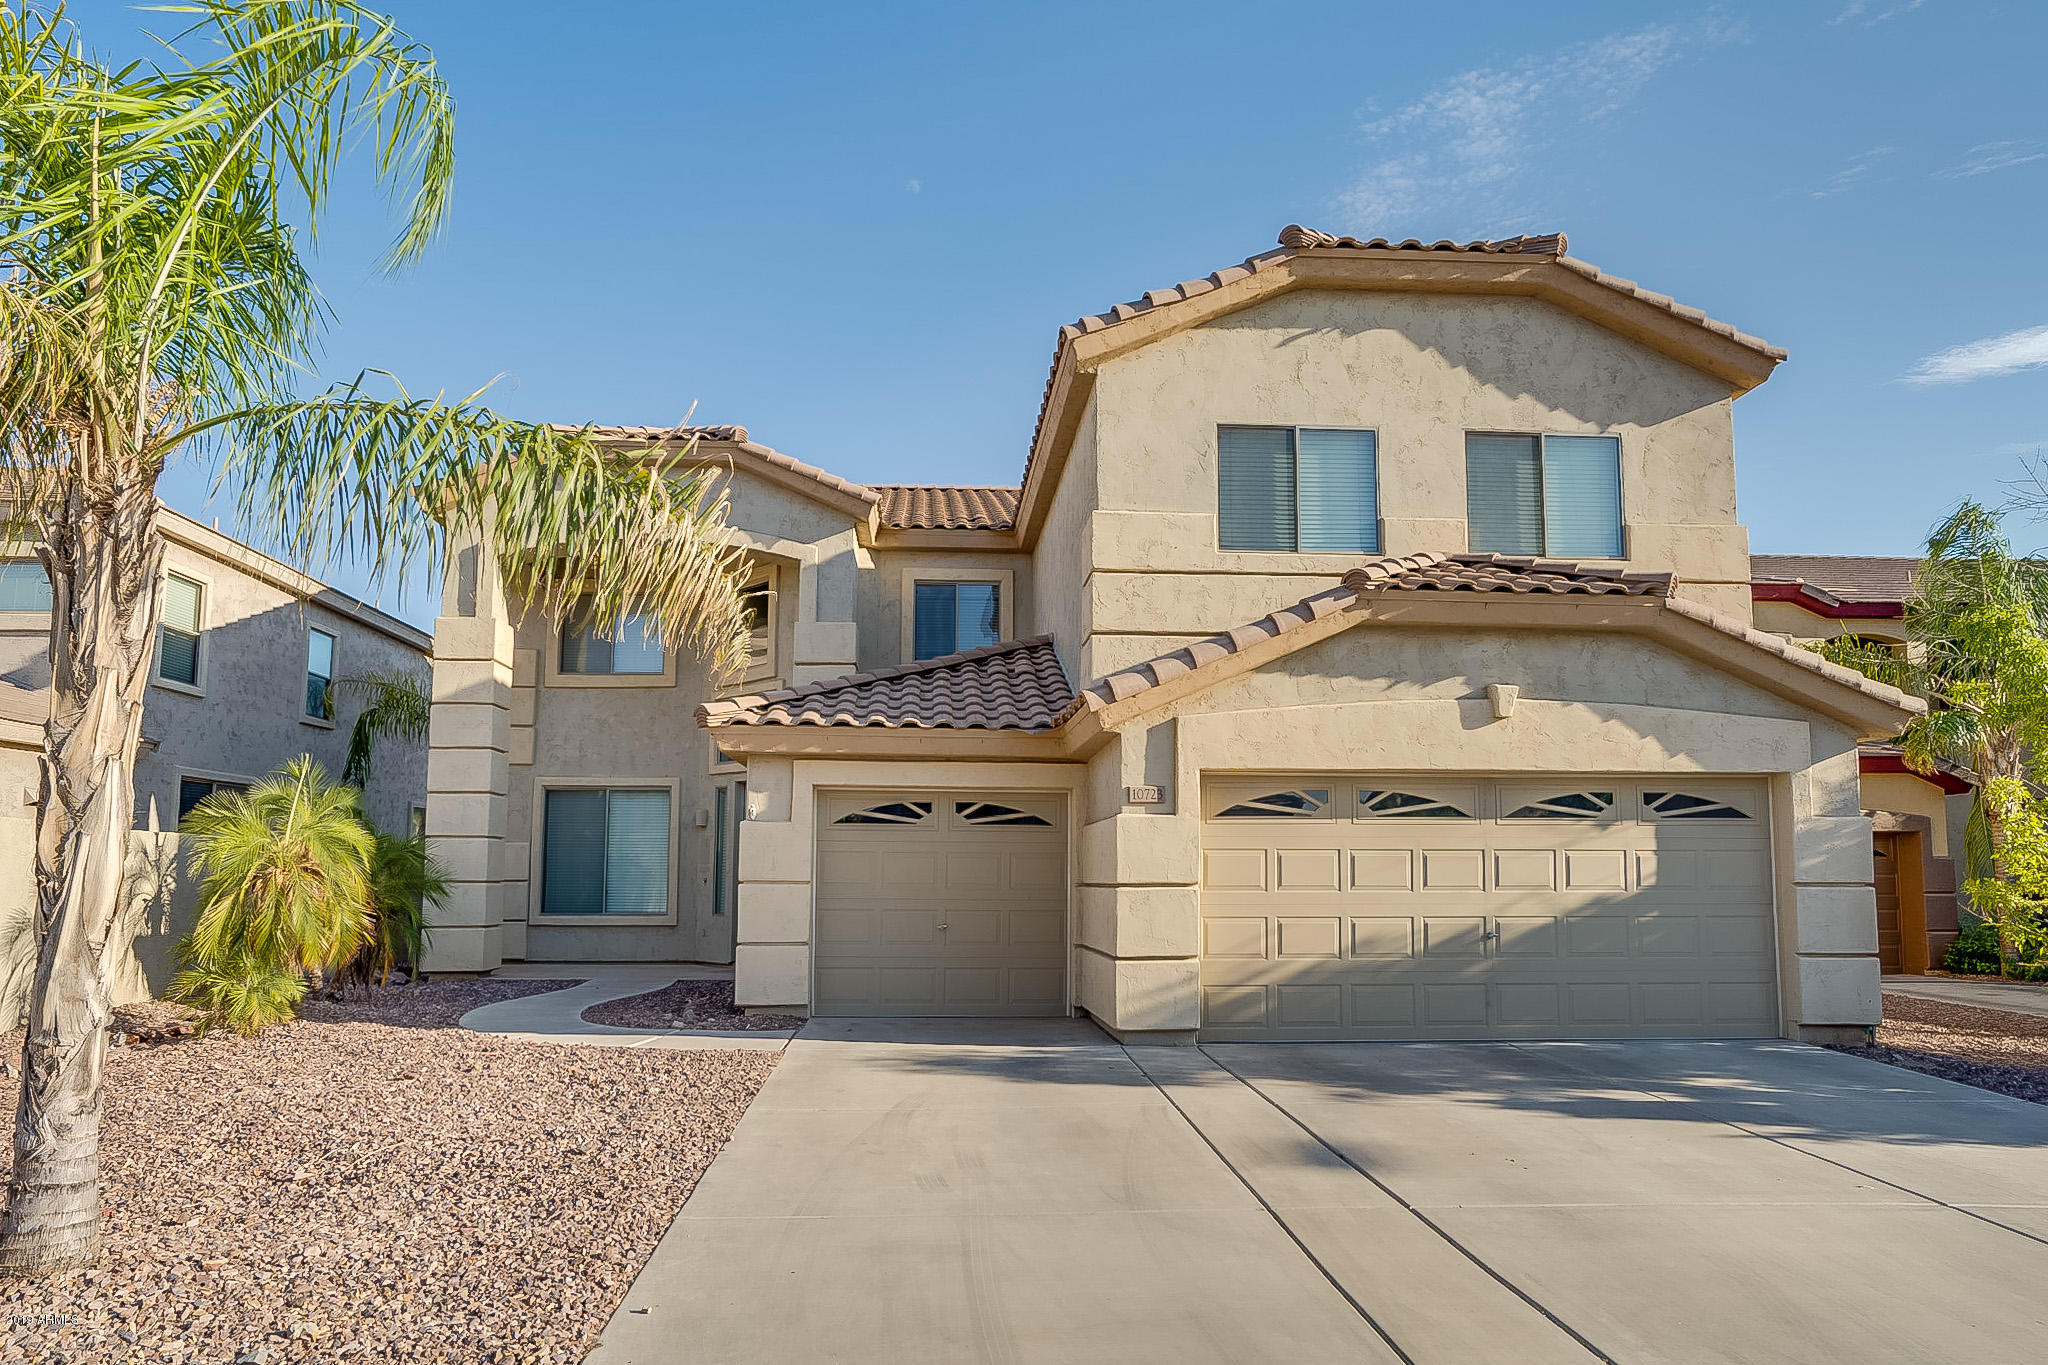 Photo of 10723 E LOBO Avenue, Mesa, AZ 85209